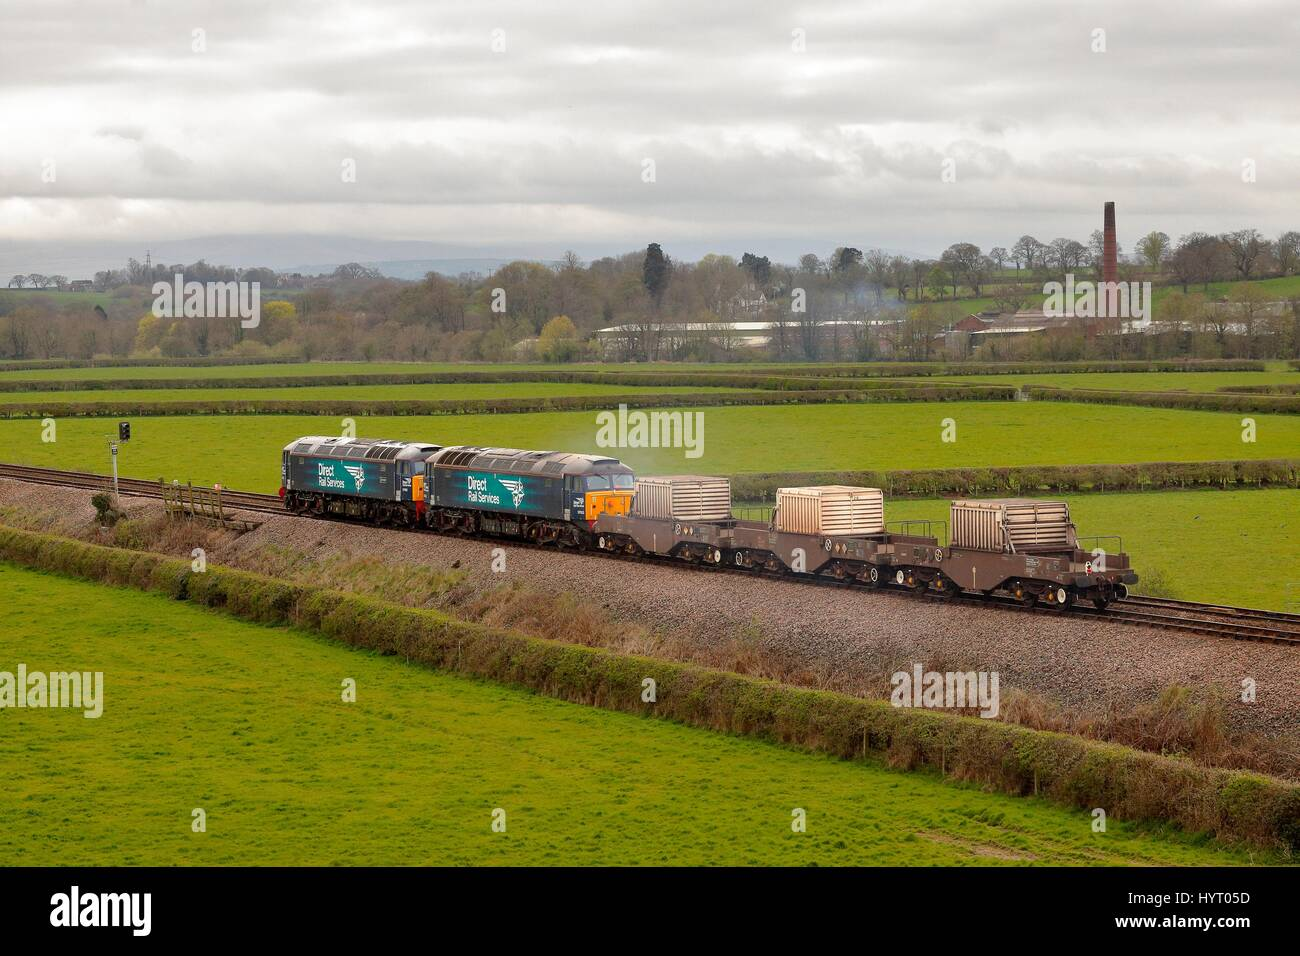 Nuclear waste transported in transport cabin containing a nuclear waste flask by Direct Rail Services Class 57 freight - Stock Image